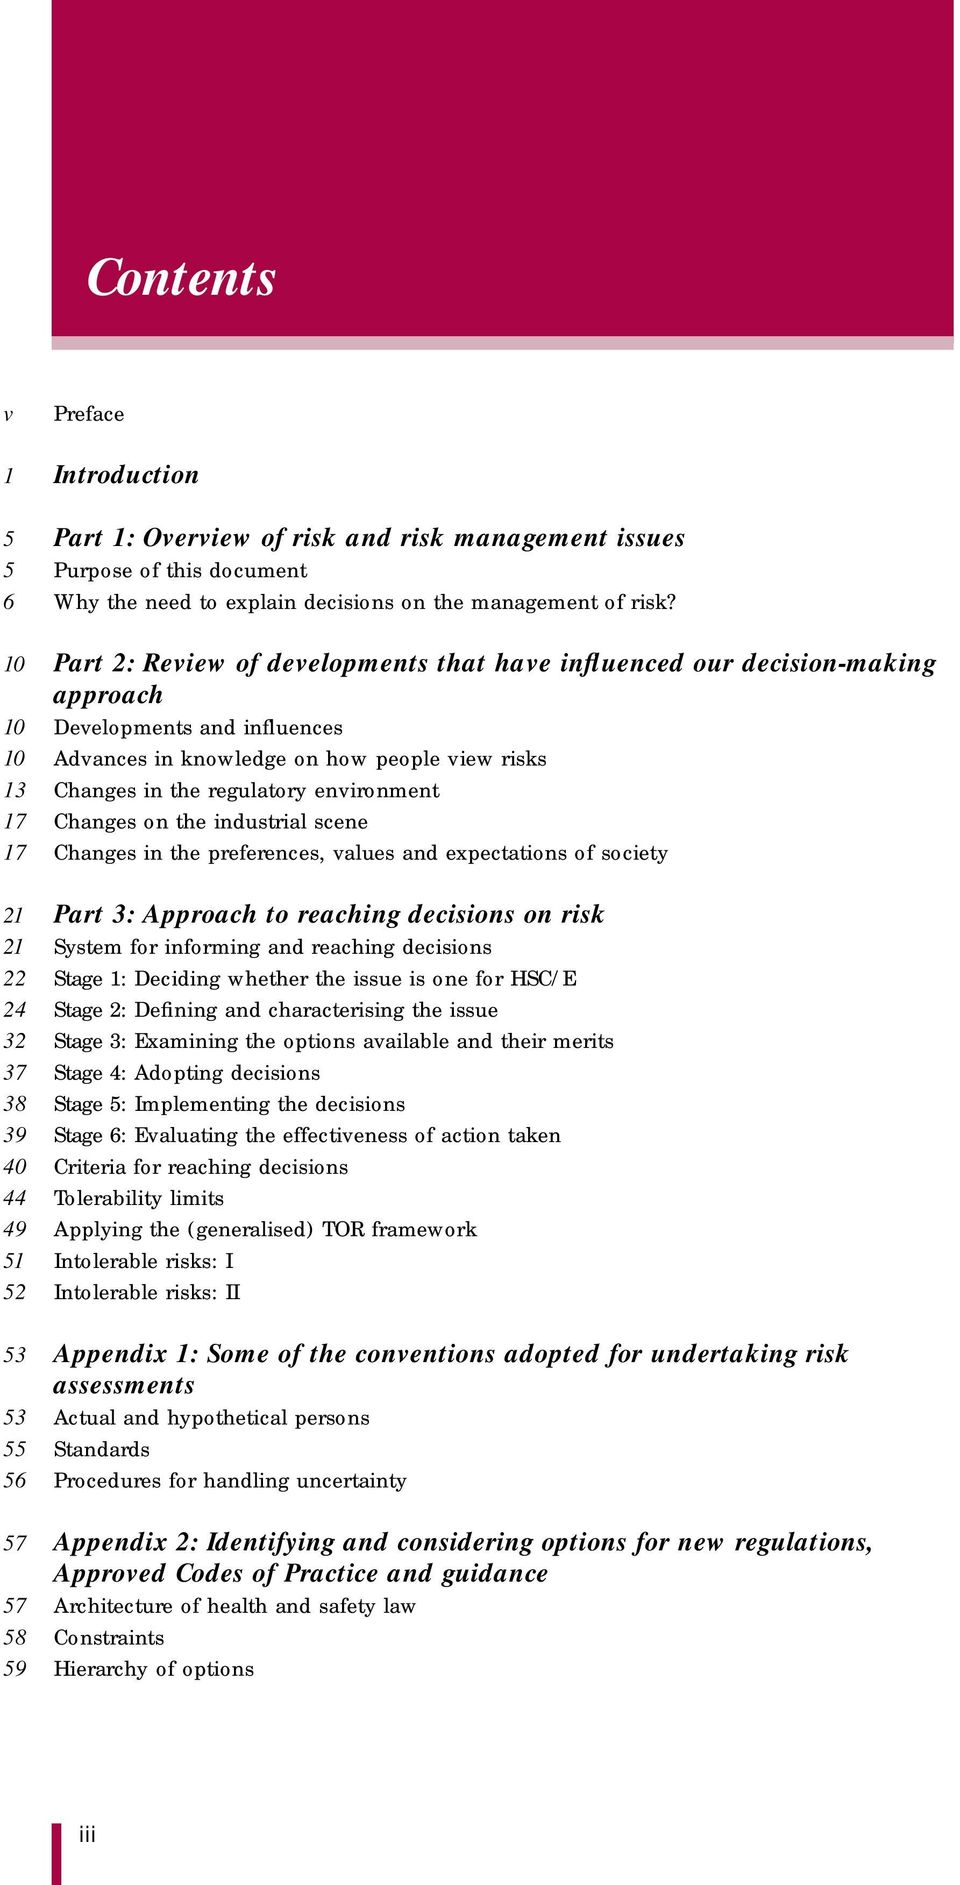 environment 17 Changes on the industrial scene 17 Changes in the preferences, values and expectations of society 21 Part 3: Approach to reaching decisions on risk 21 System for informing and reaching